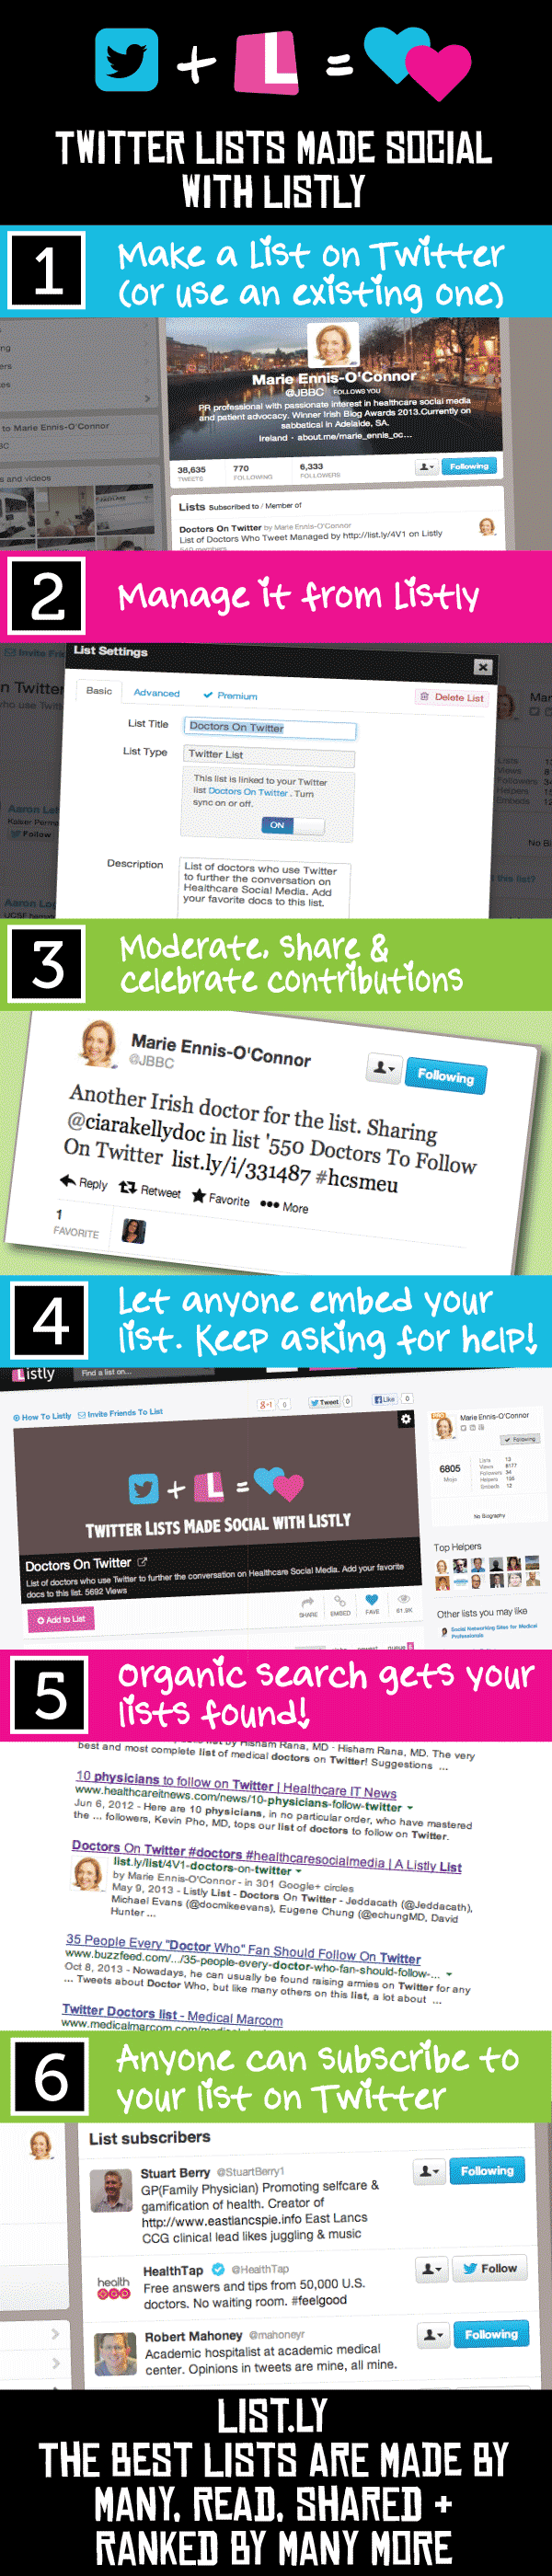 Now You Can Co-create Twitter Lists with your Community! infographic